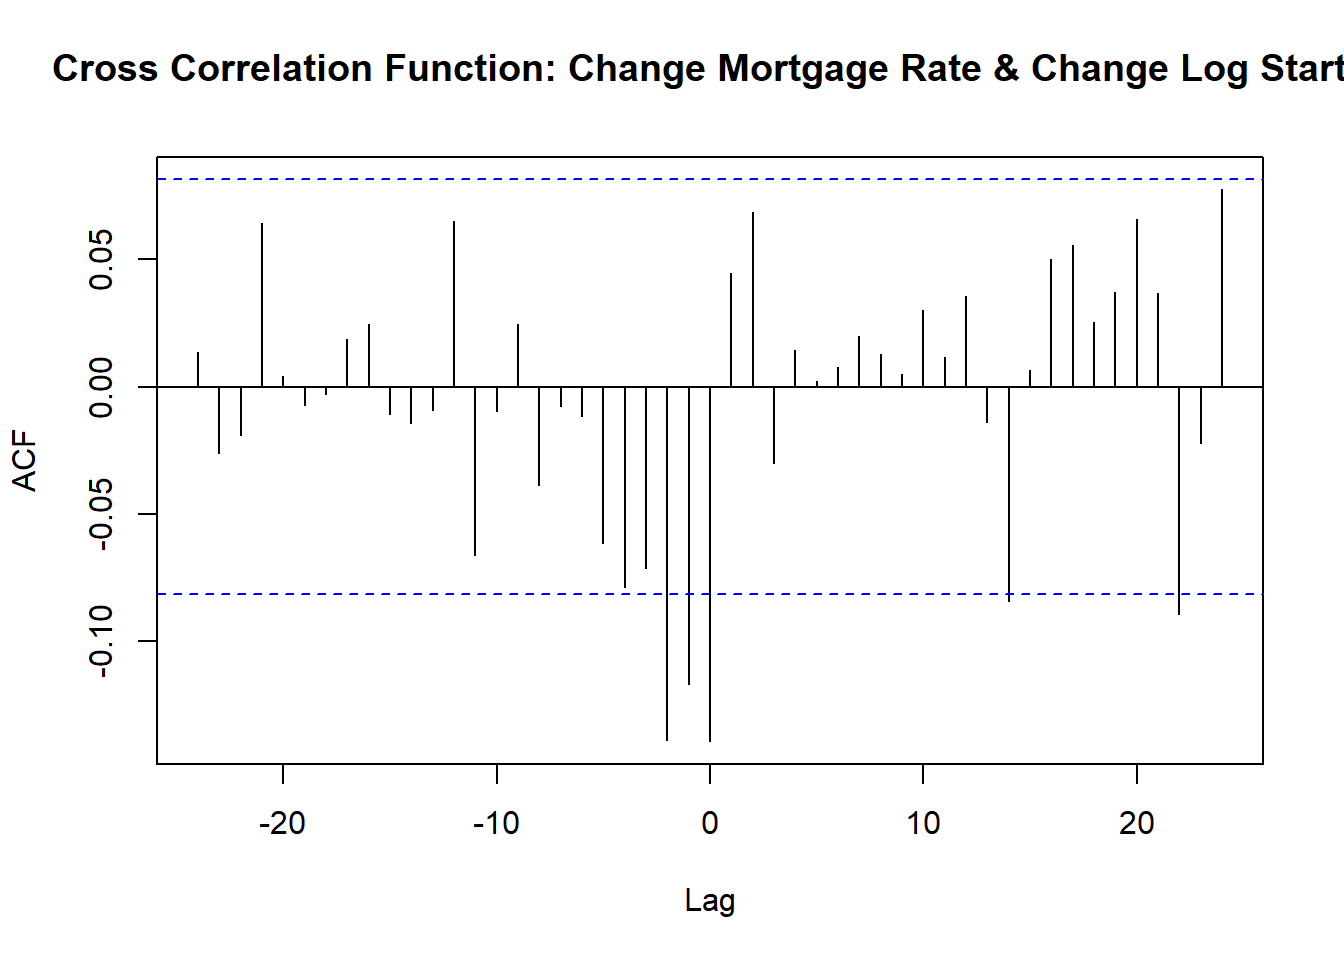 Cross correlation function of changes in mortgage rates and changes in log starts